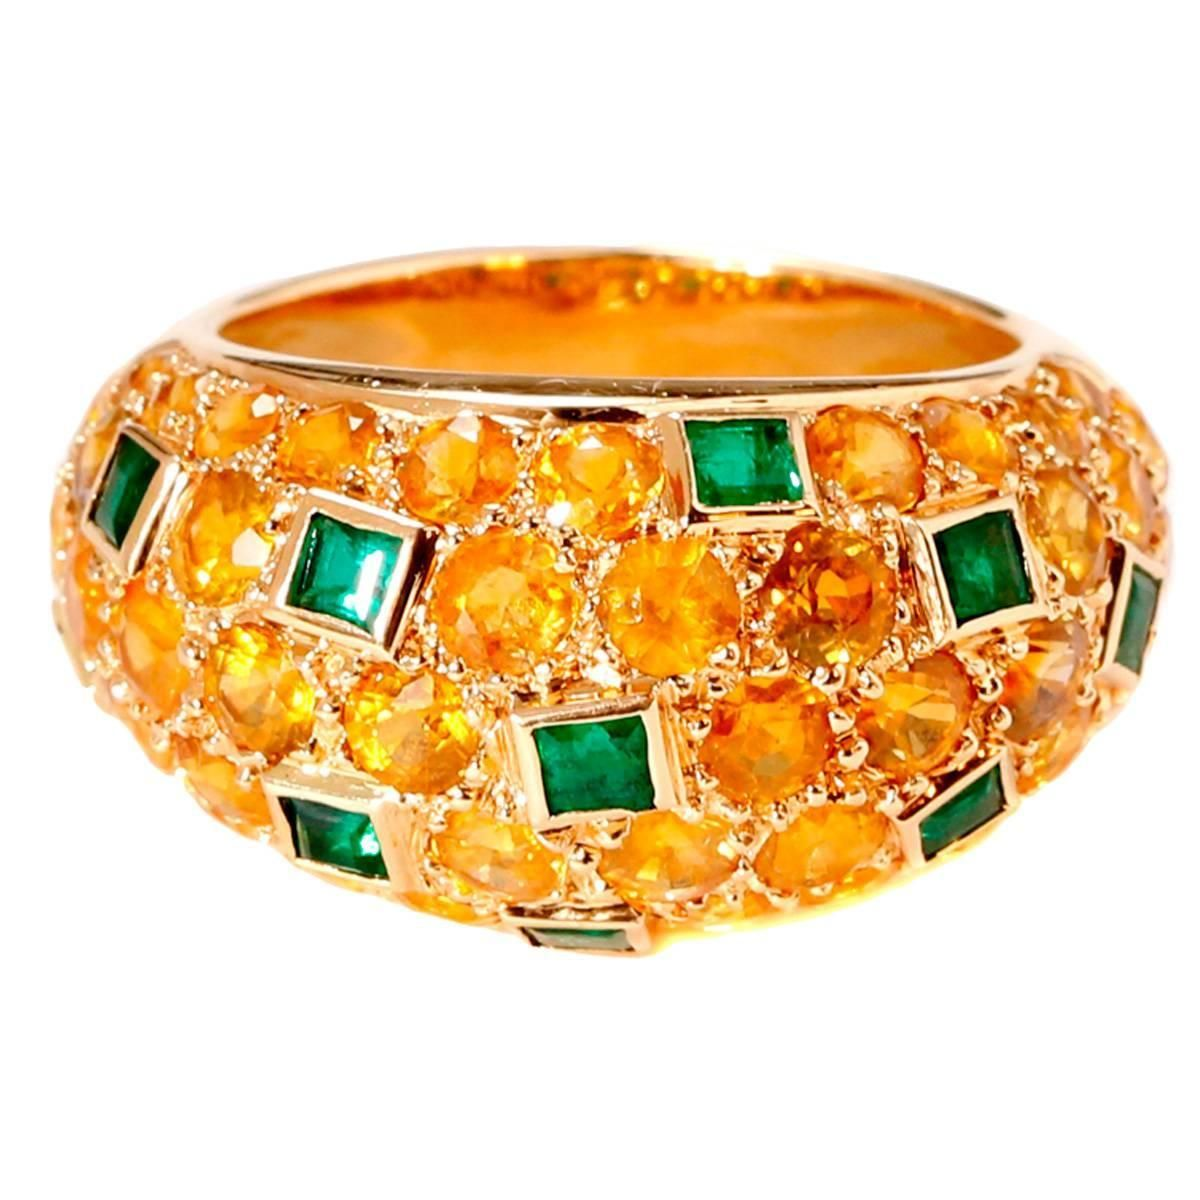 Van cleef u arpels yellow sapphire emerald gold bombe ring van